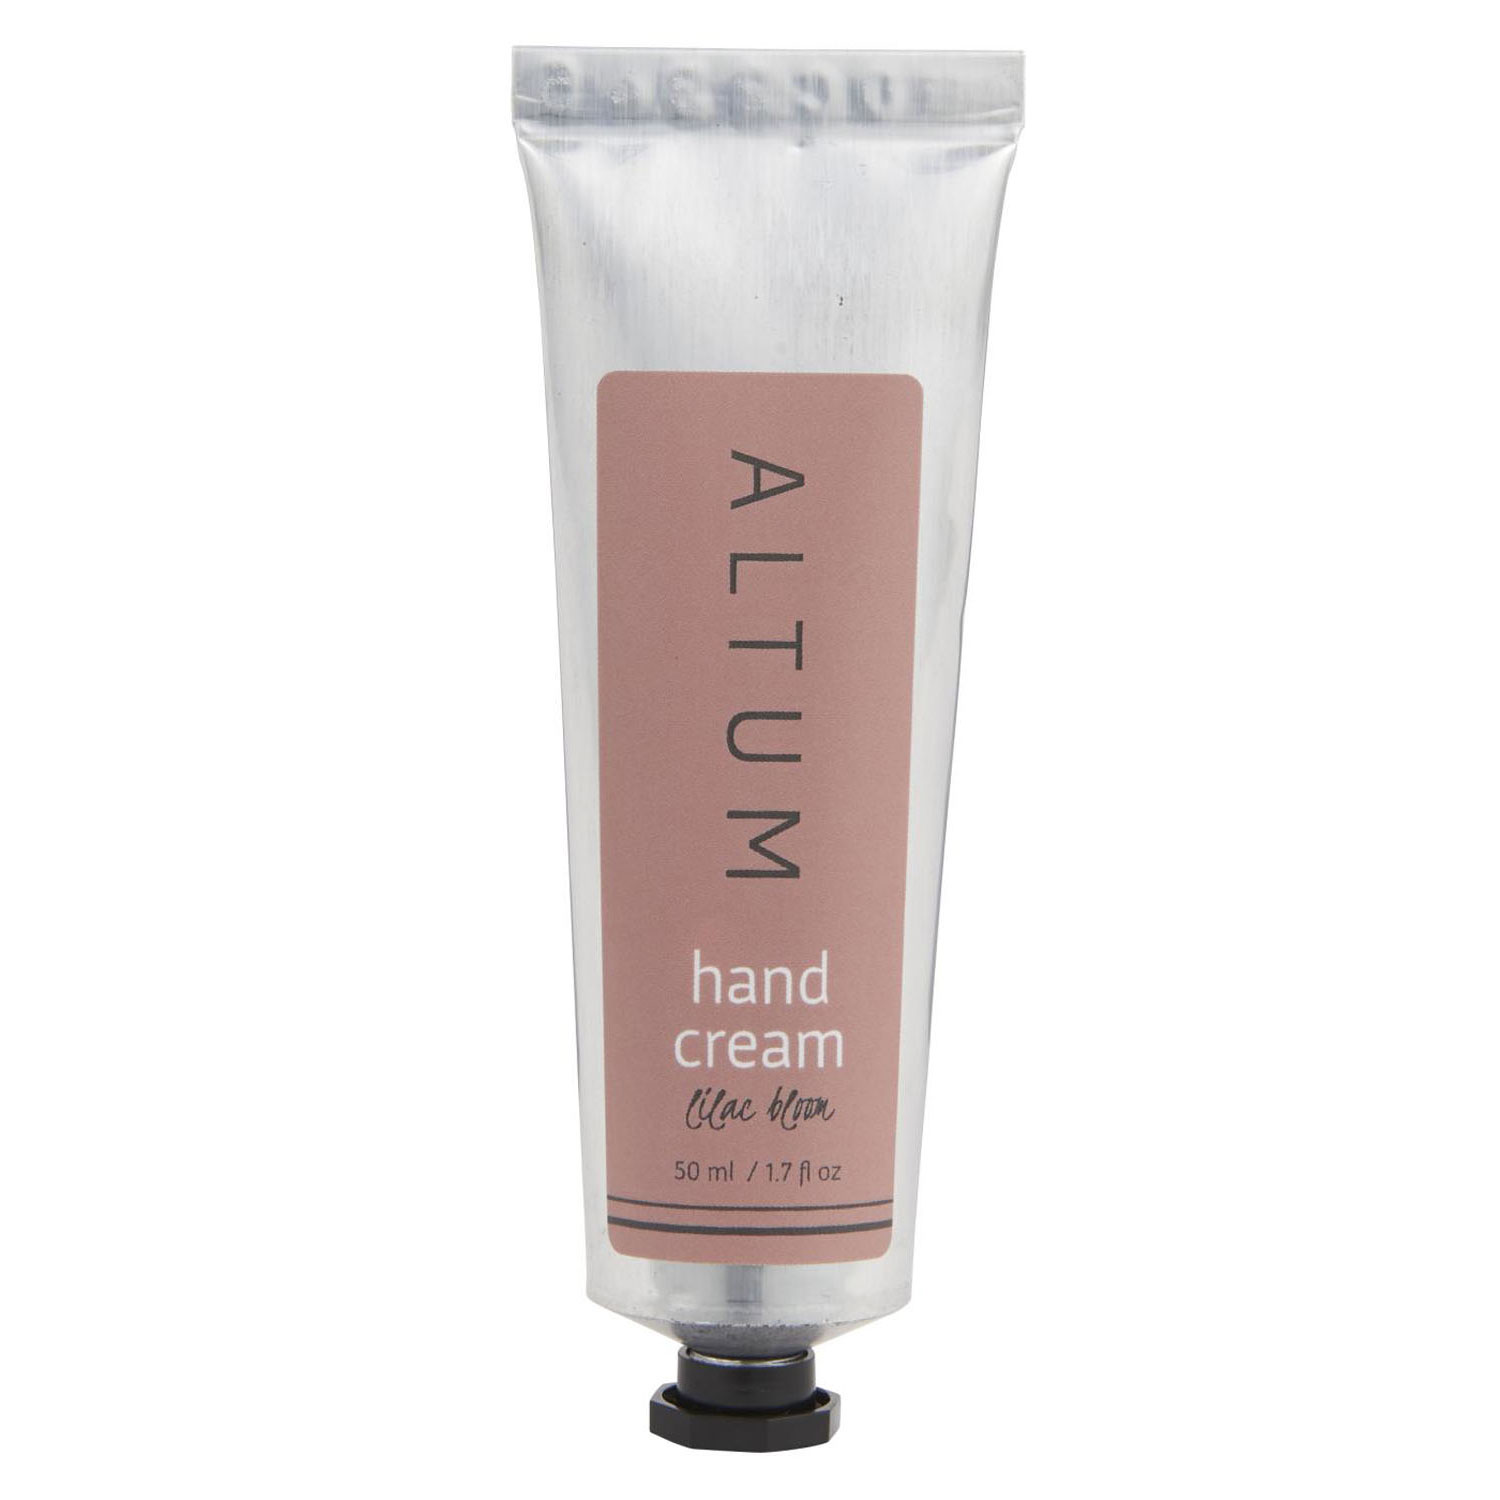 Altum Handcrème Lilac Bloom, 50ml